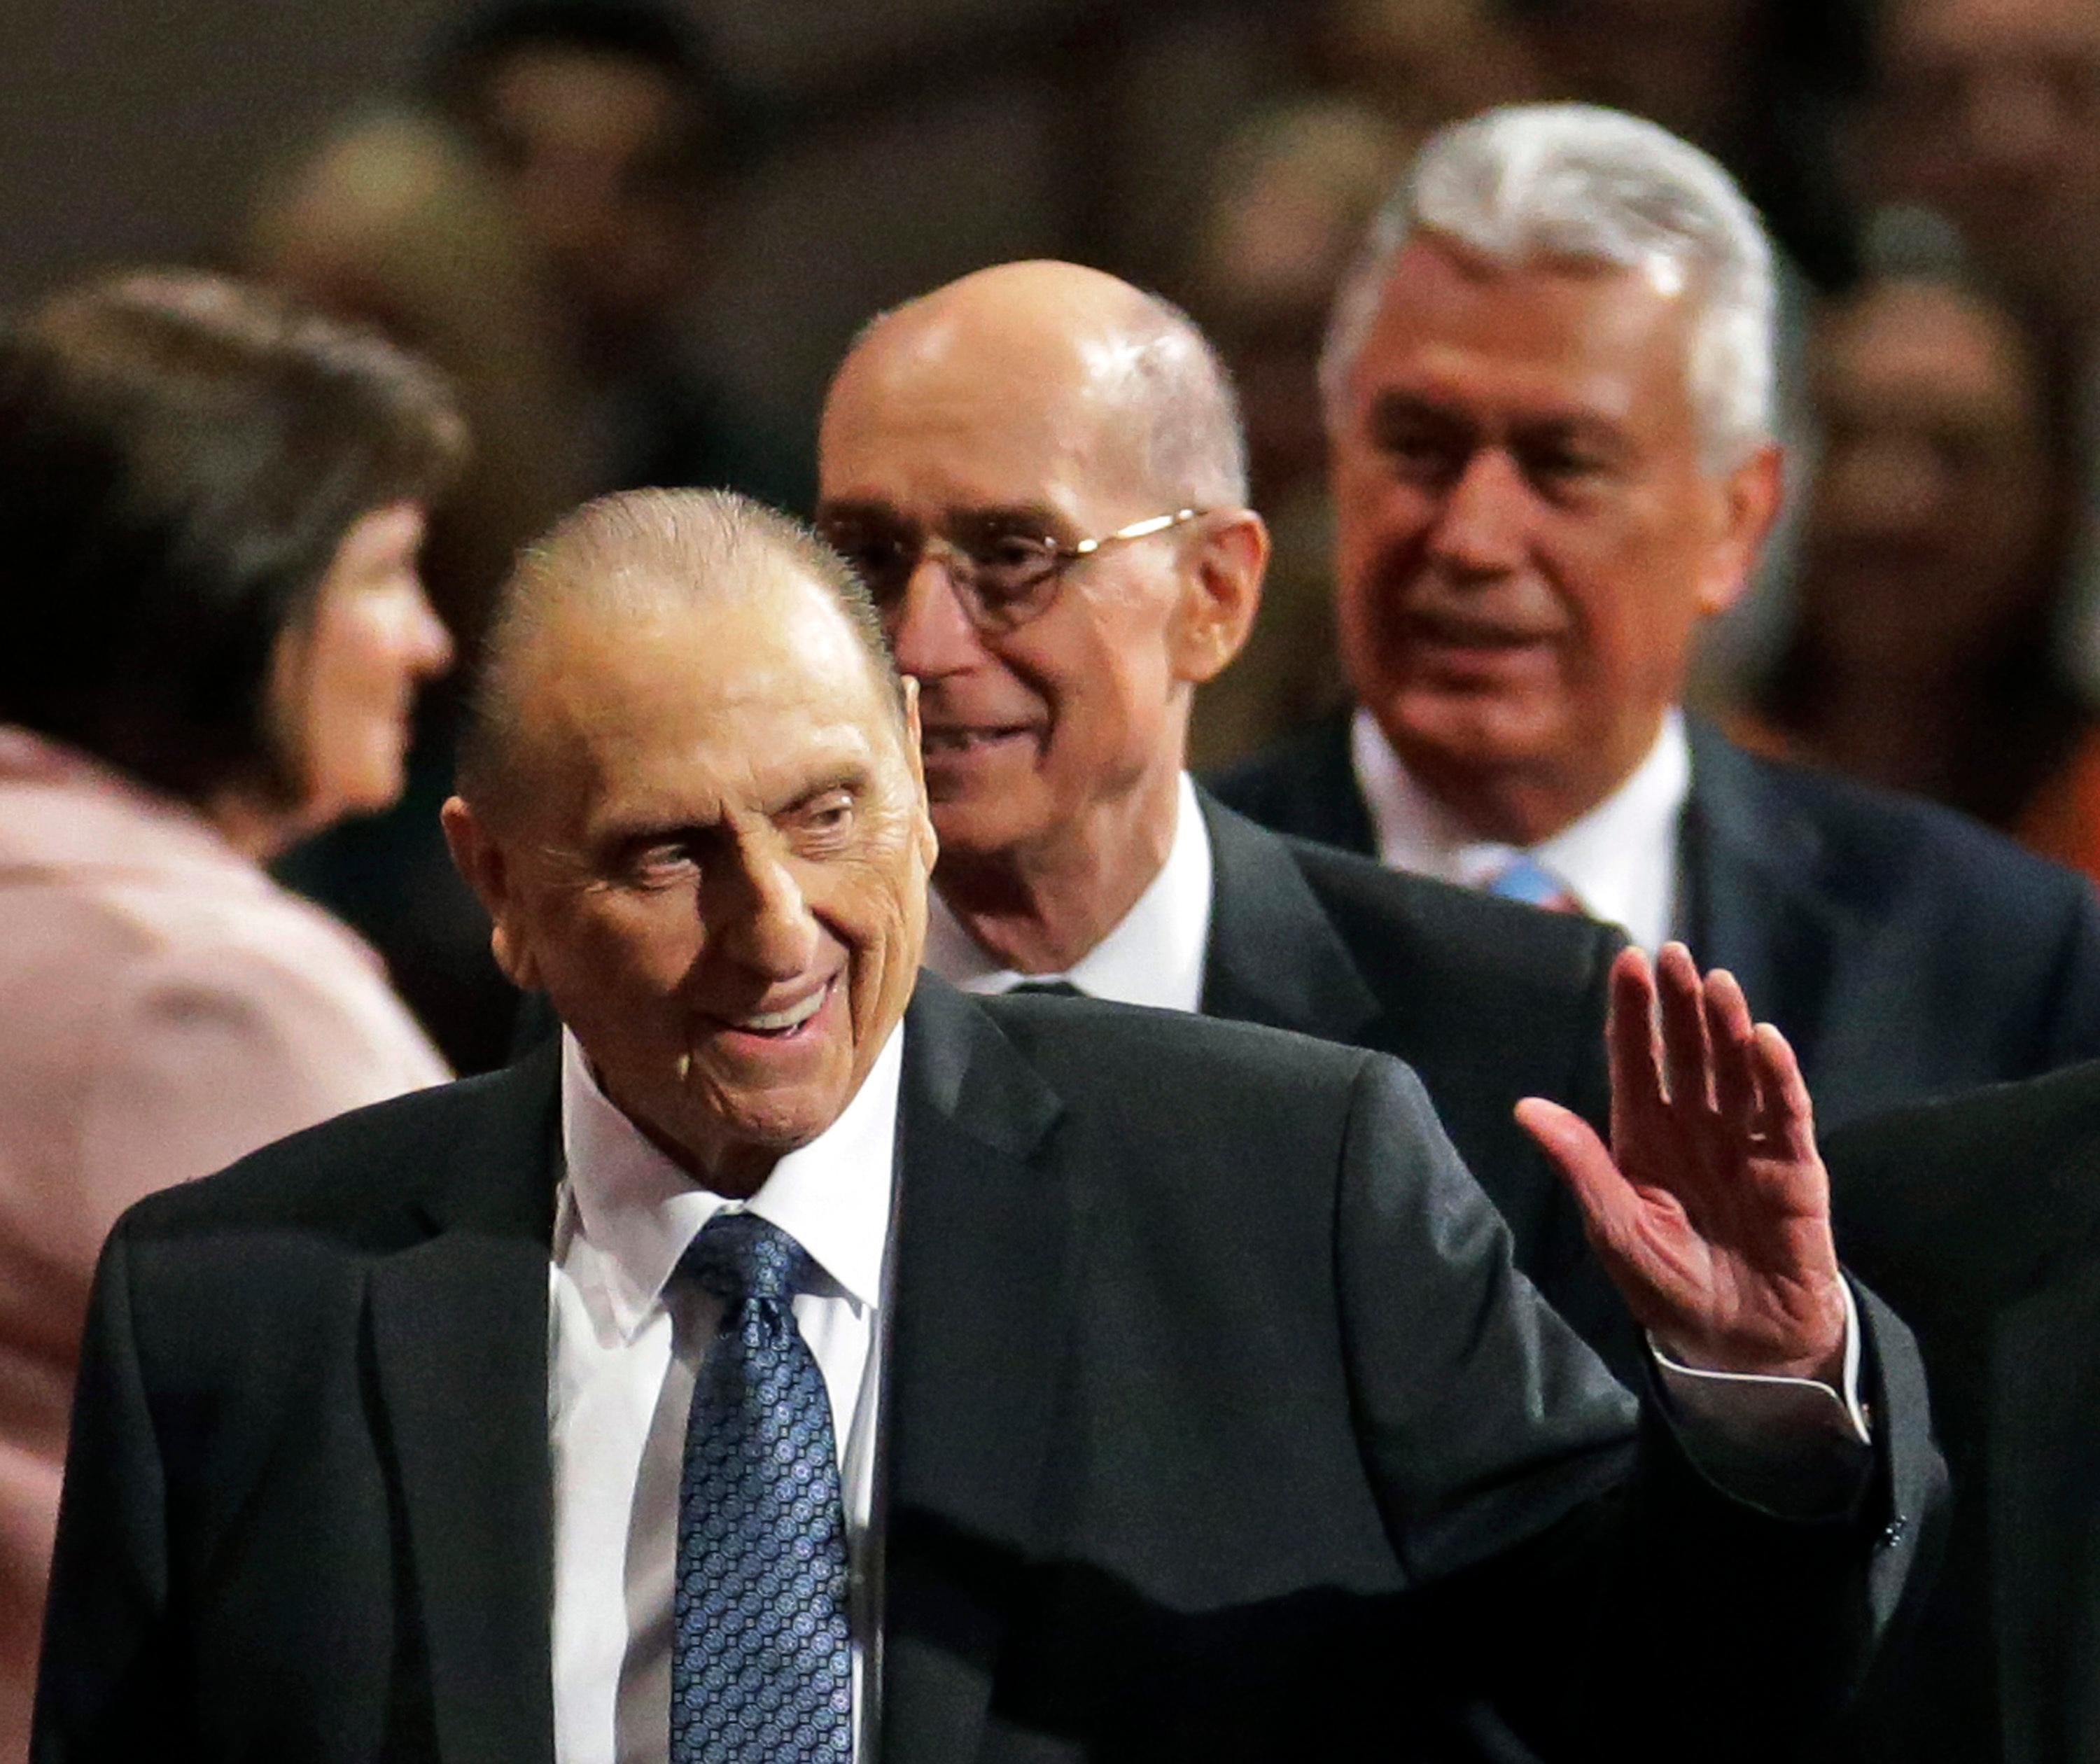 FILE - In this April 4, 2015, file photo, President Thomas S. Monson, of The Church of Jesus Christ of Latter-day Saints, waves to the audience during the opening session of the Mormon church conference in Salt Lake City. Monson, the 16th president of the Mormon church, died after nine years in office. He was 90. (AP Photo/Rick Bowmer, File)